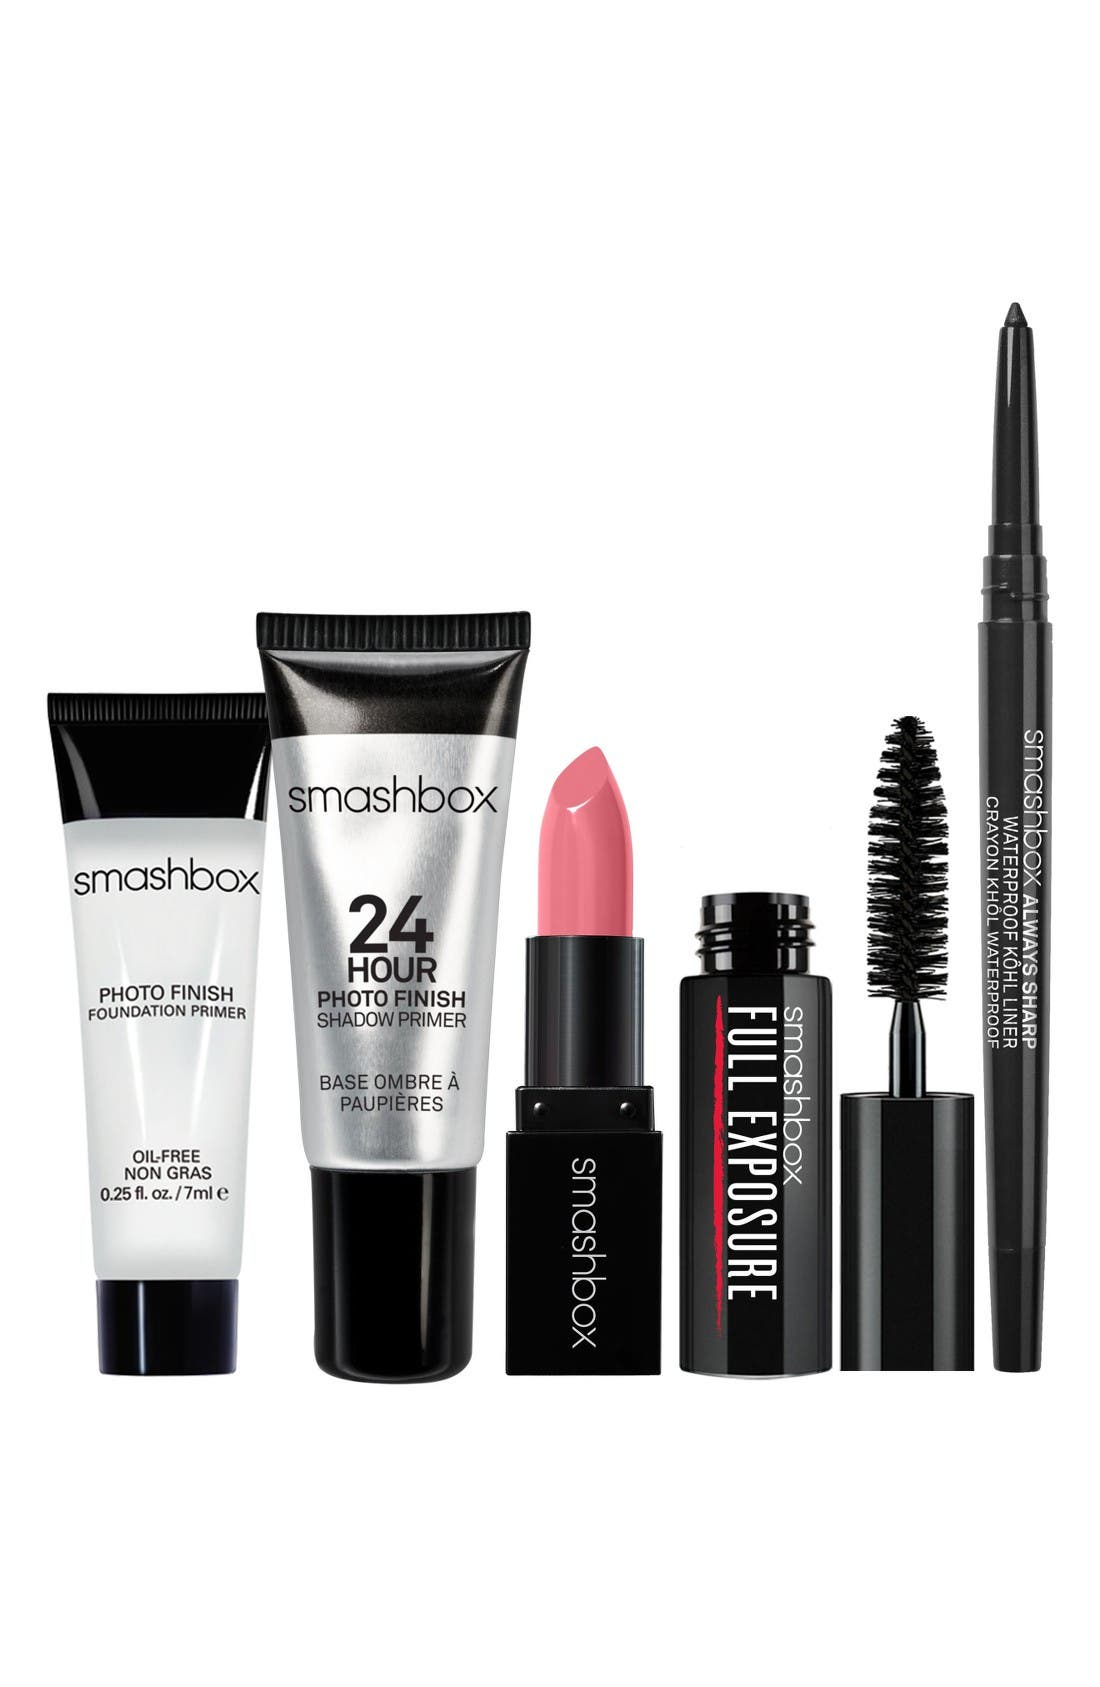 Smashbox Try It Kit ($63 Value)